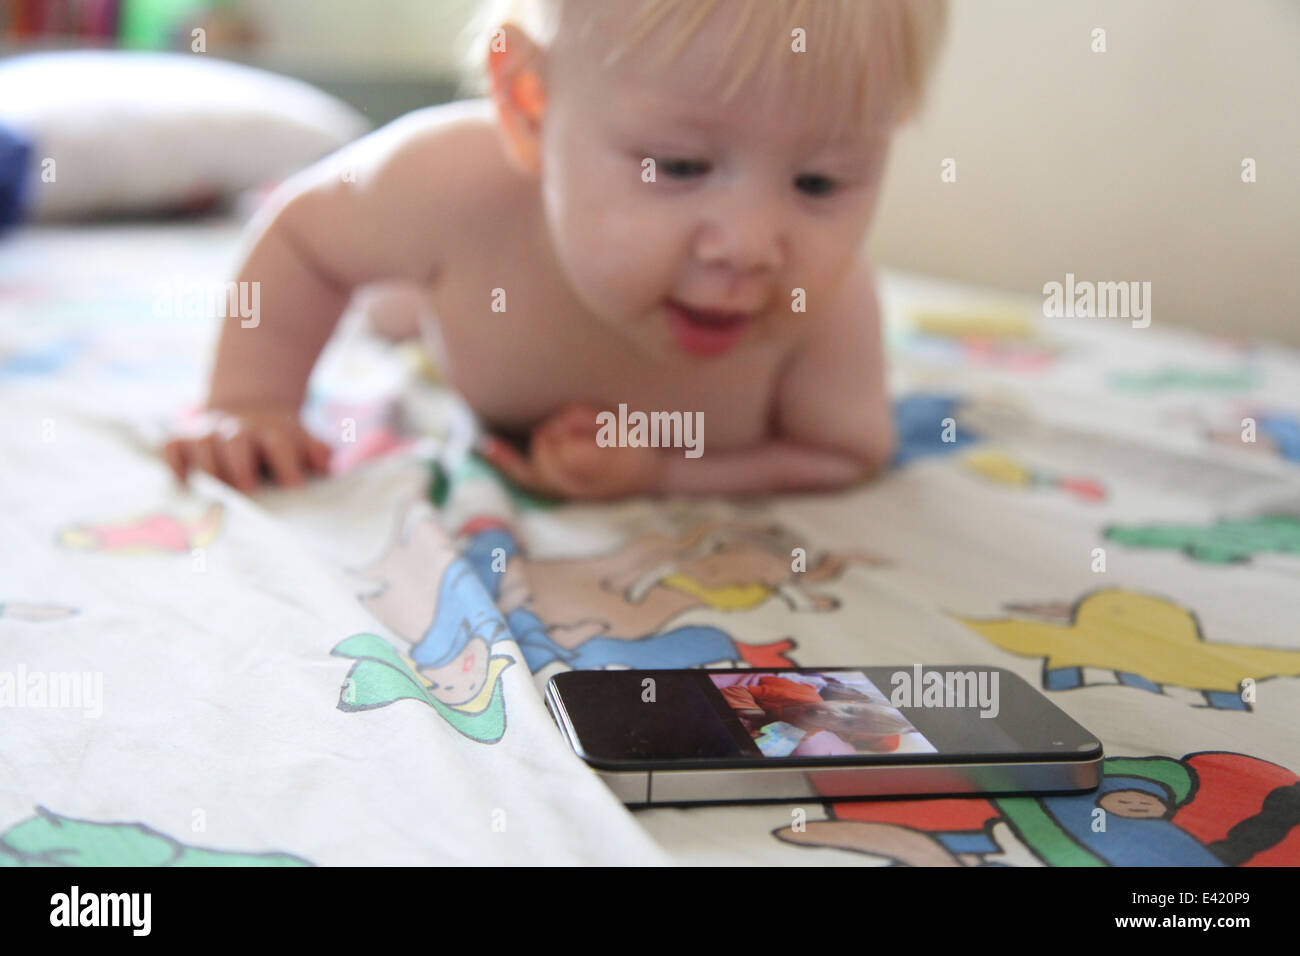 Baby plays with smartphone on bed - Stock Image